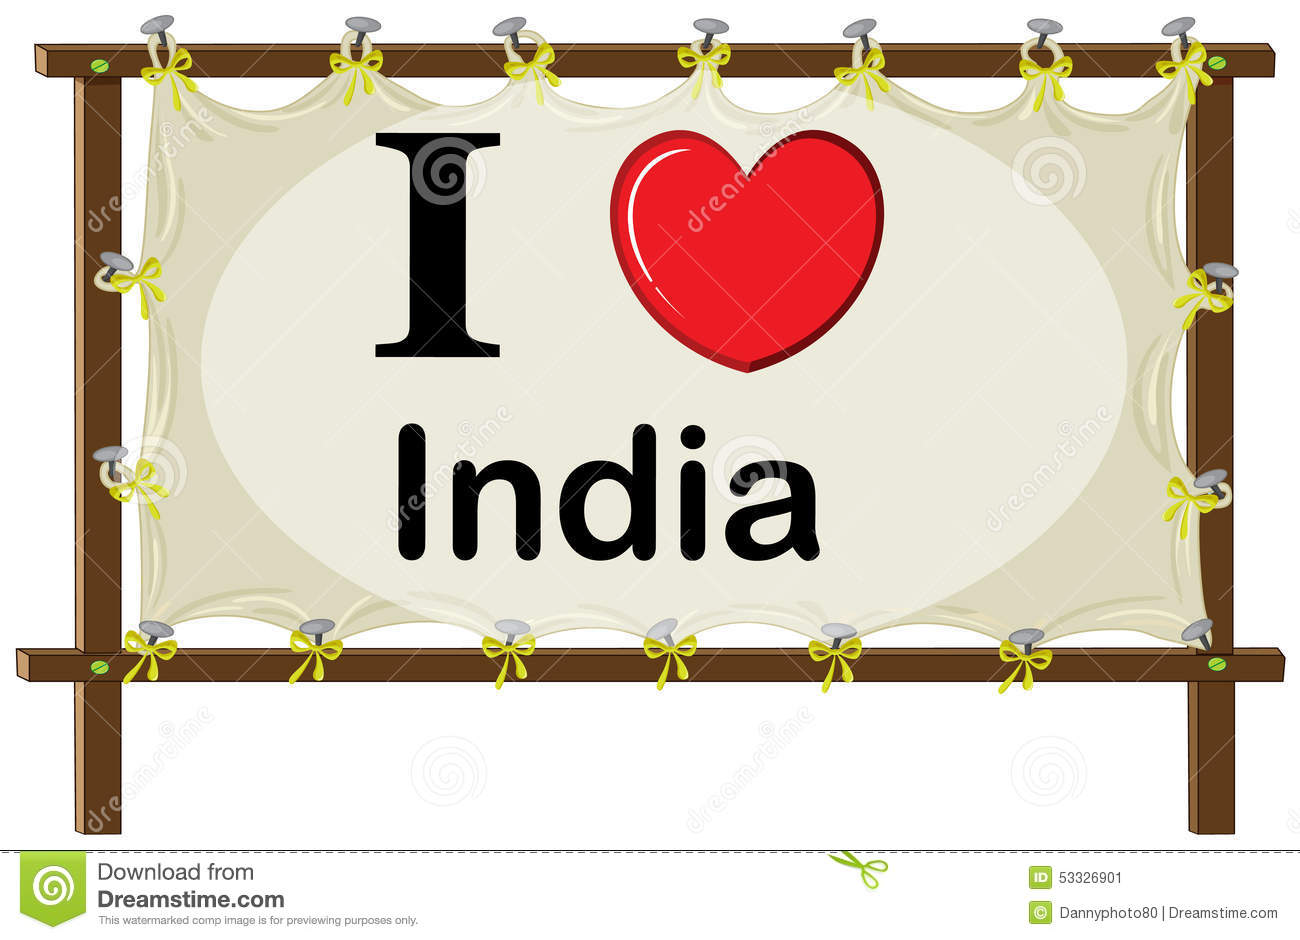 i love india Meet interesting people and find online love online dating india - find your beauty girlfriend or boyfriend sign on this dating site and get free romantic match.